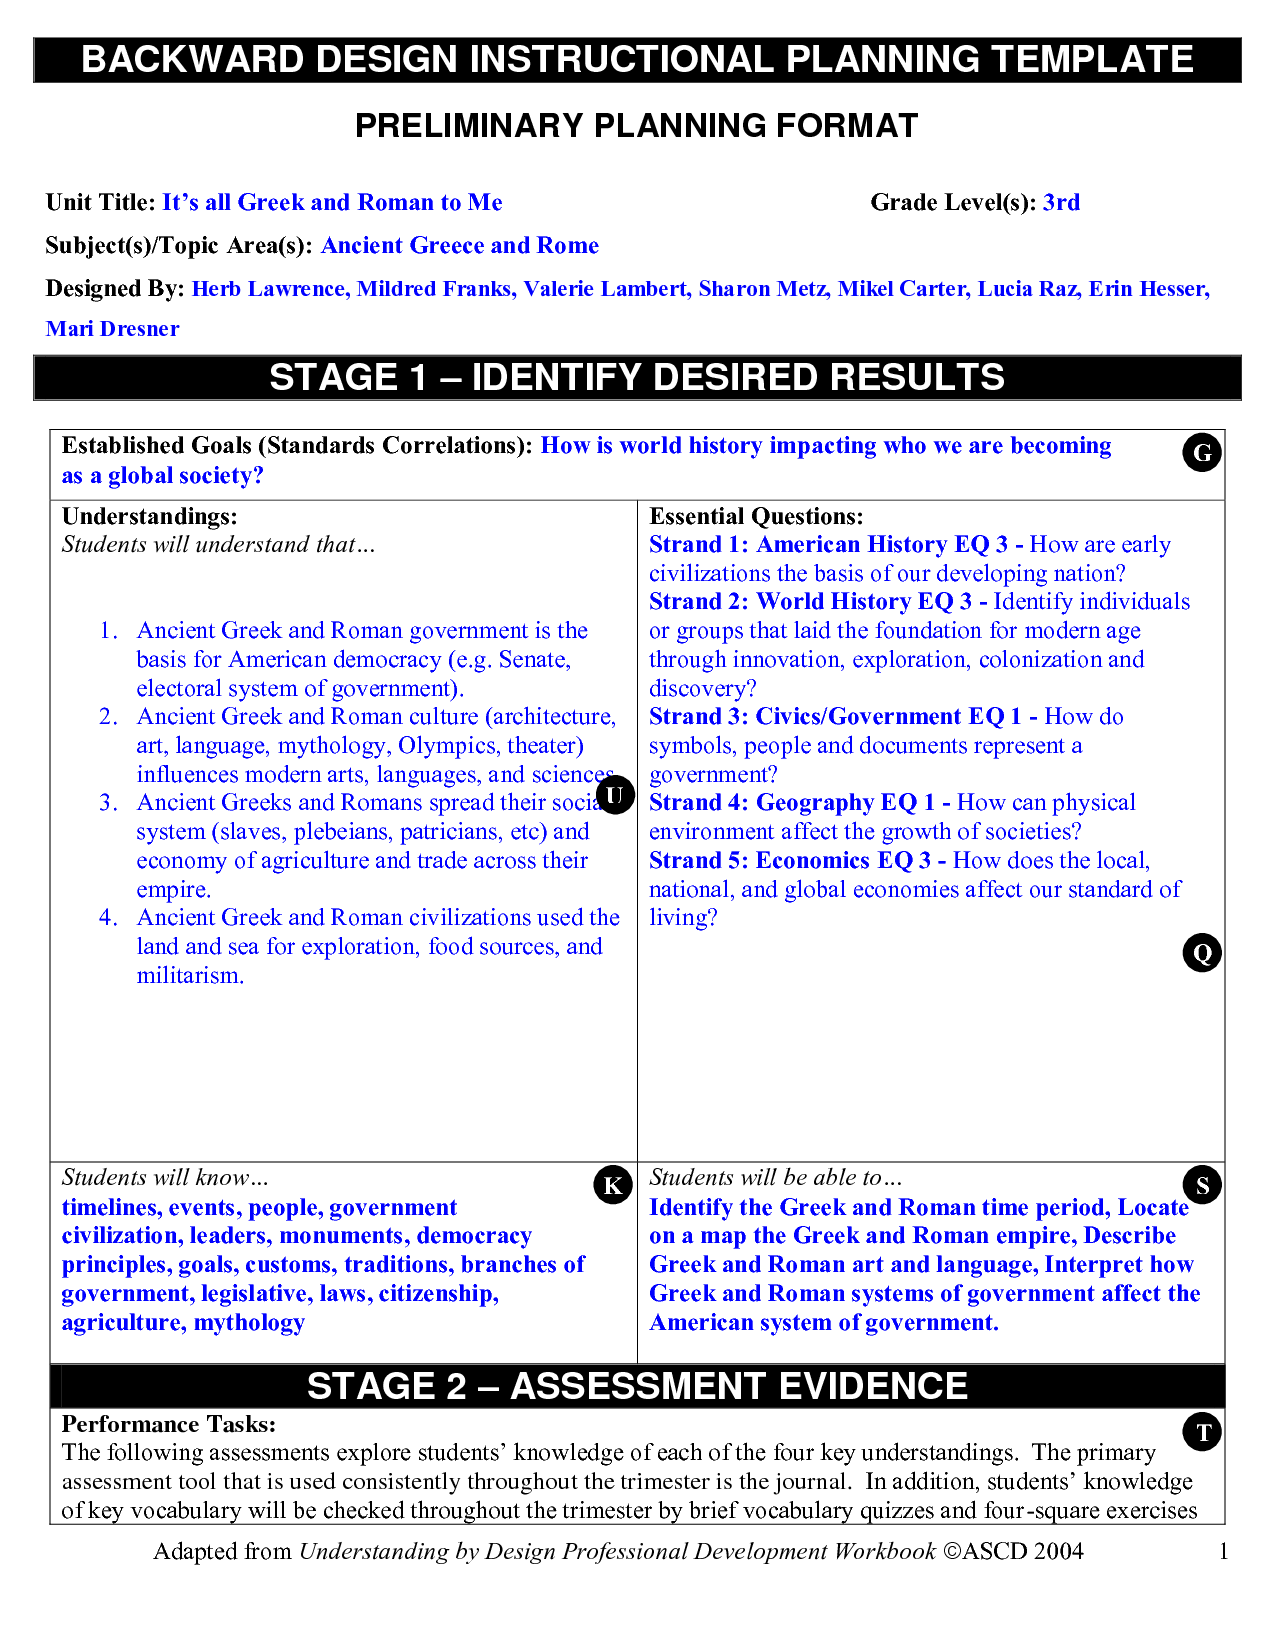 Backward Planning Template BACKWARD DESIGN INSTRUCTIONAL - Understanding by design lesson plan template